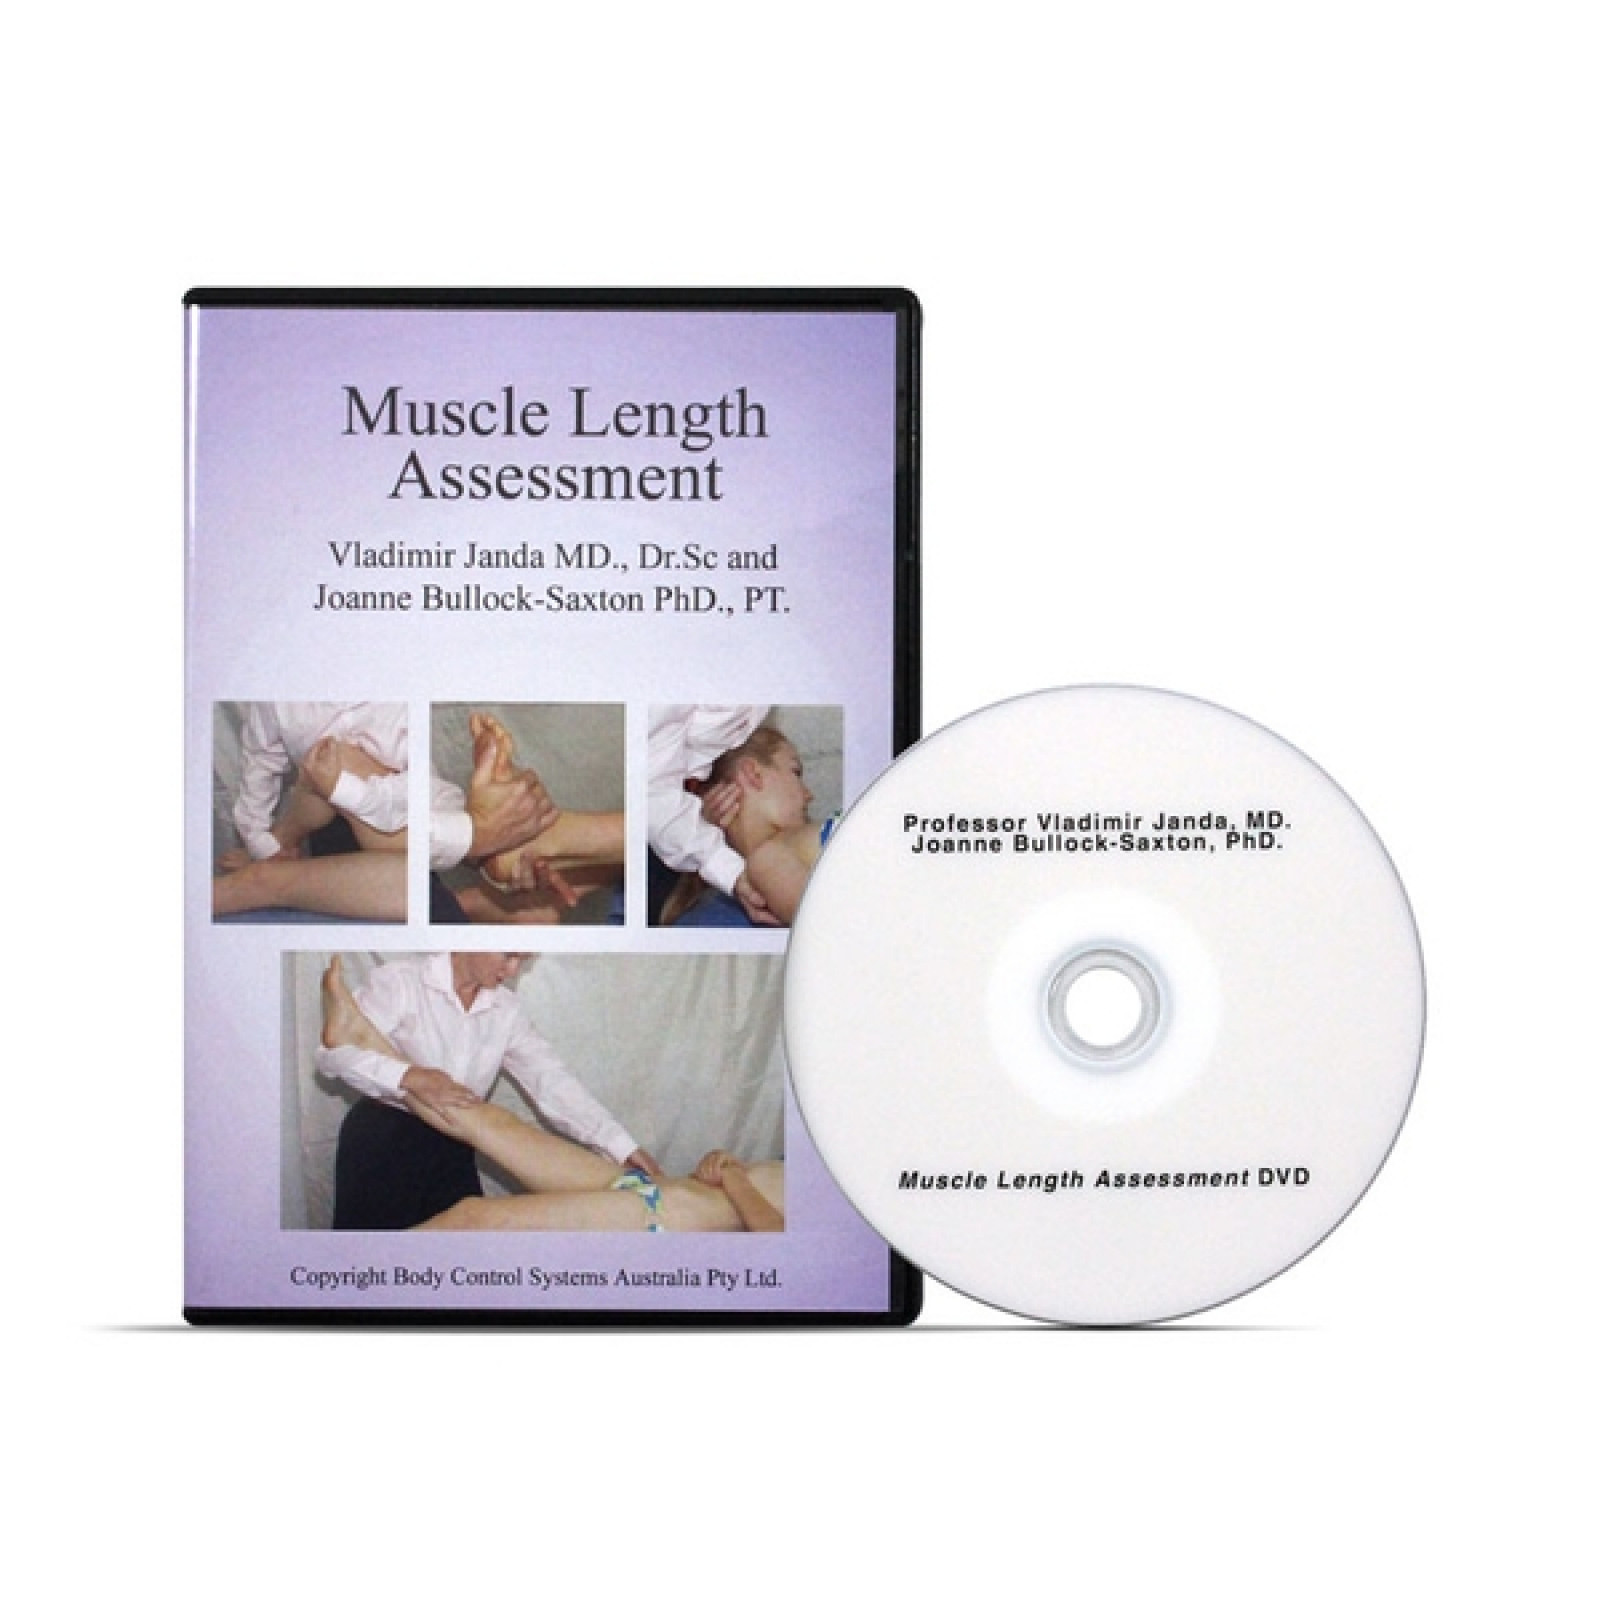 Muscle Length Assessment